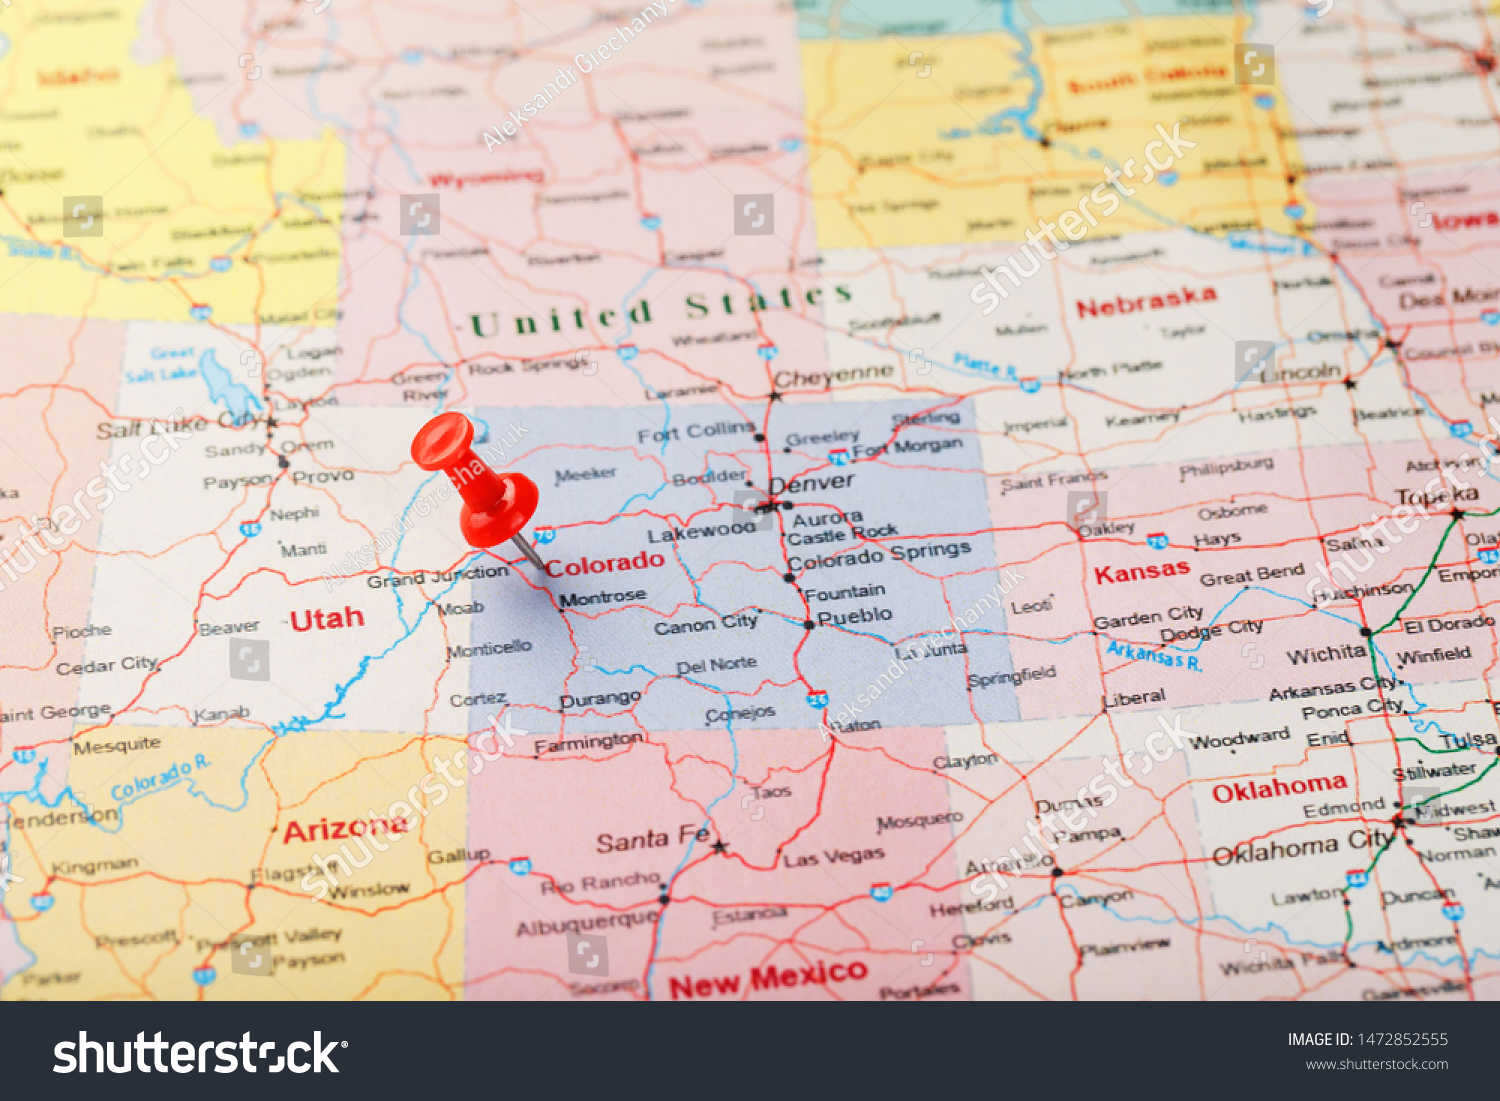 denver colorado on map of us Red Clerical Needle On Map Usa Stock Photo Edit Now 1472852555 denver colorado on map of us